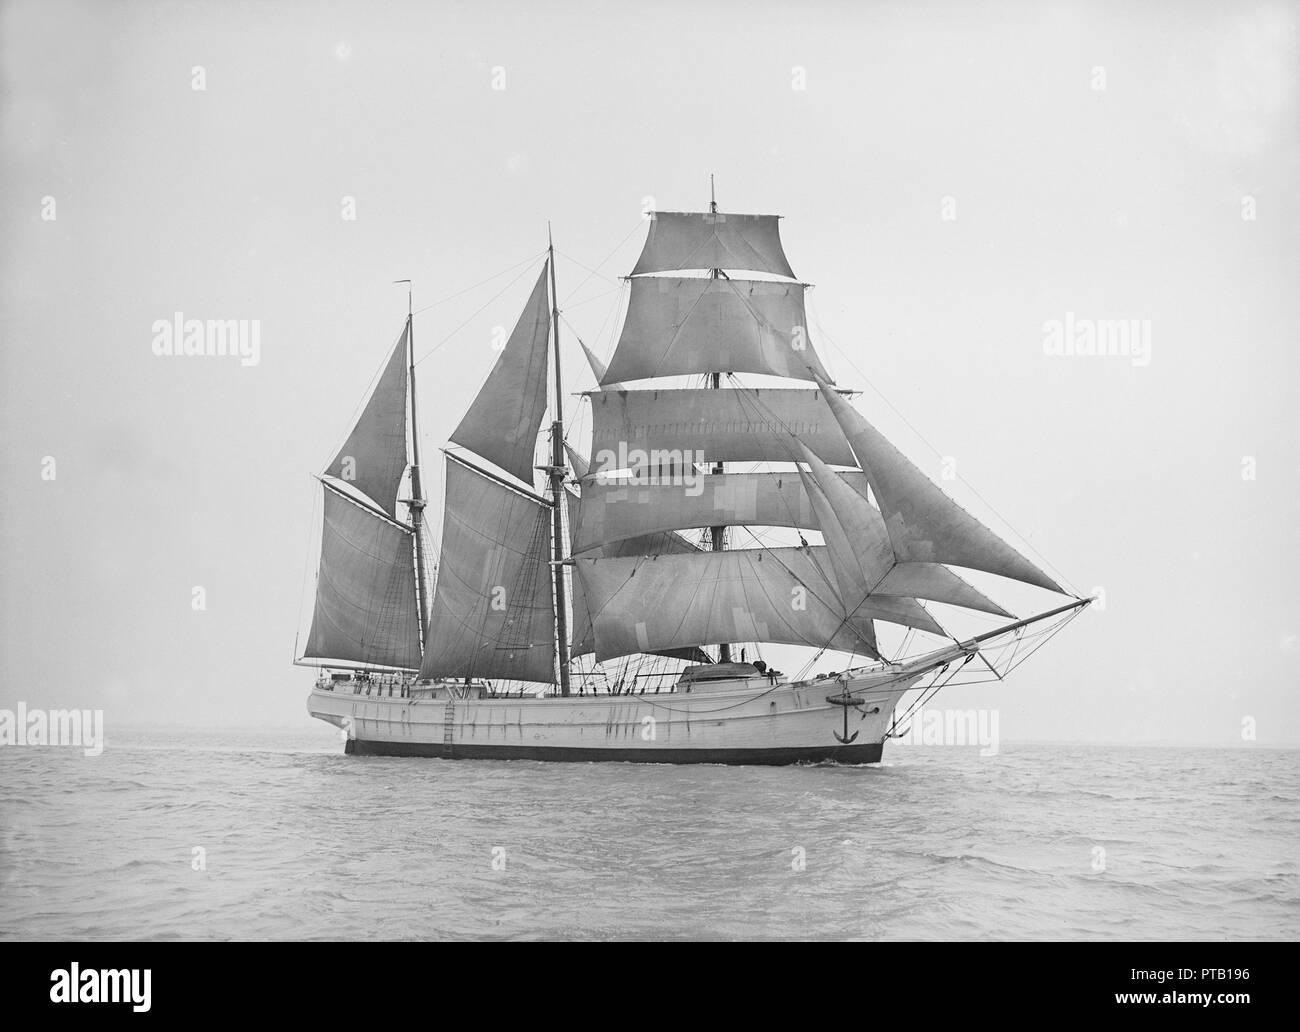 A barquentine rigged ship, 1913. - Stock Image